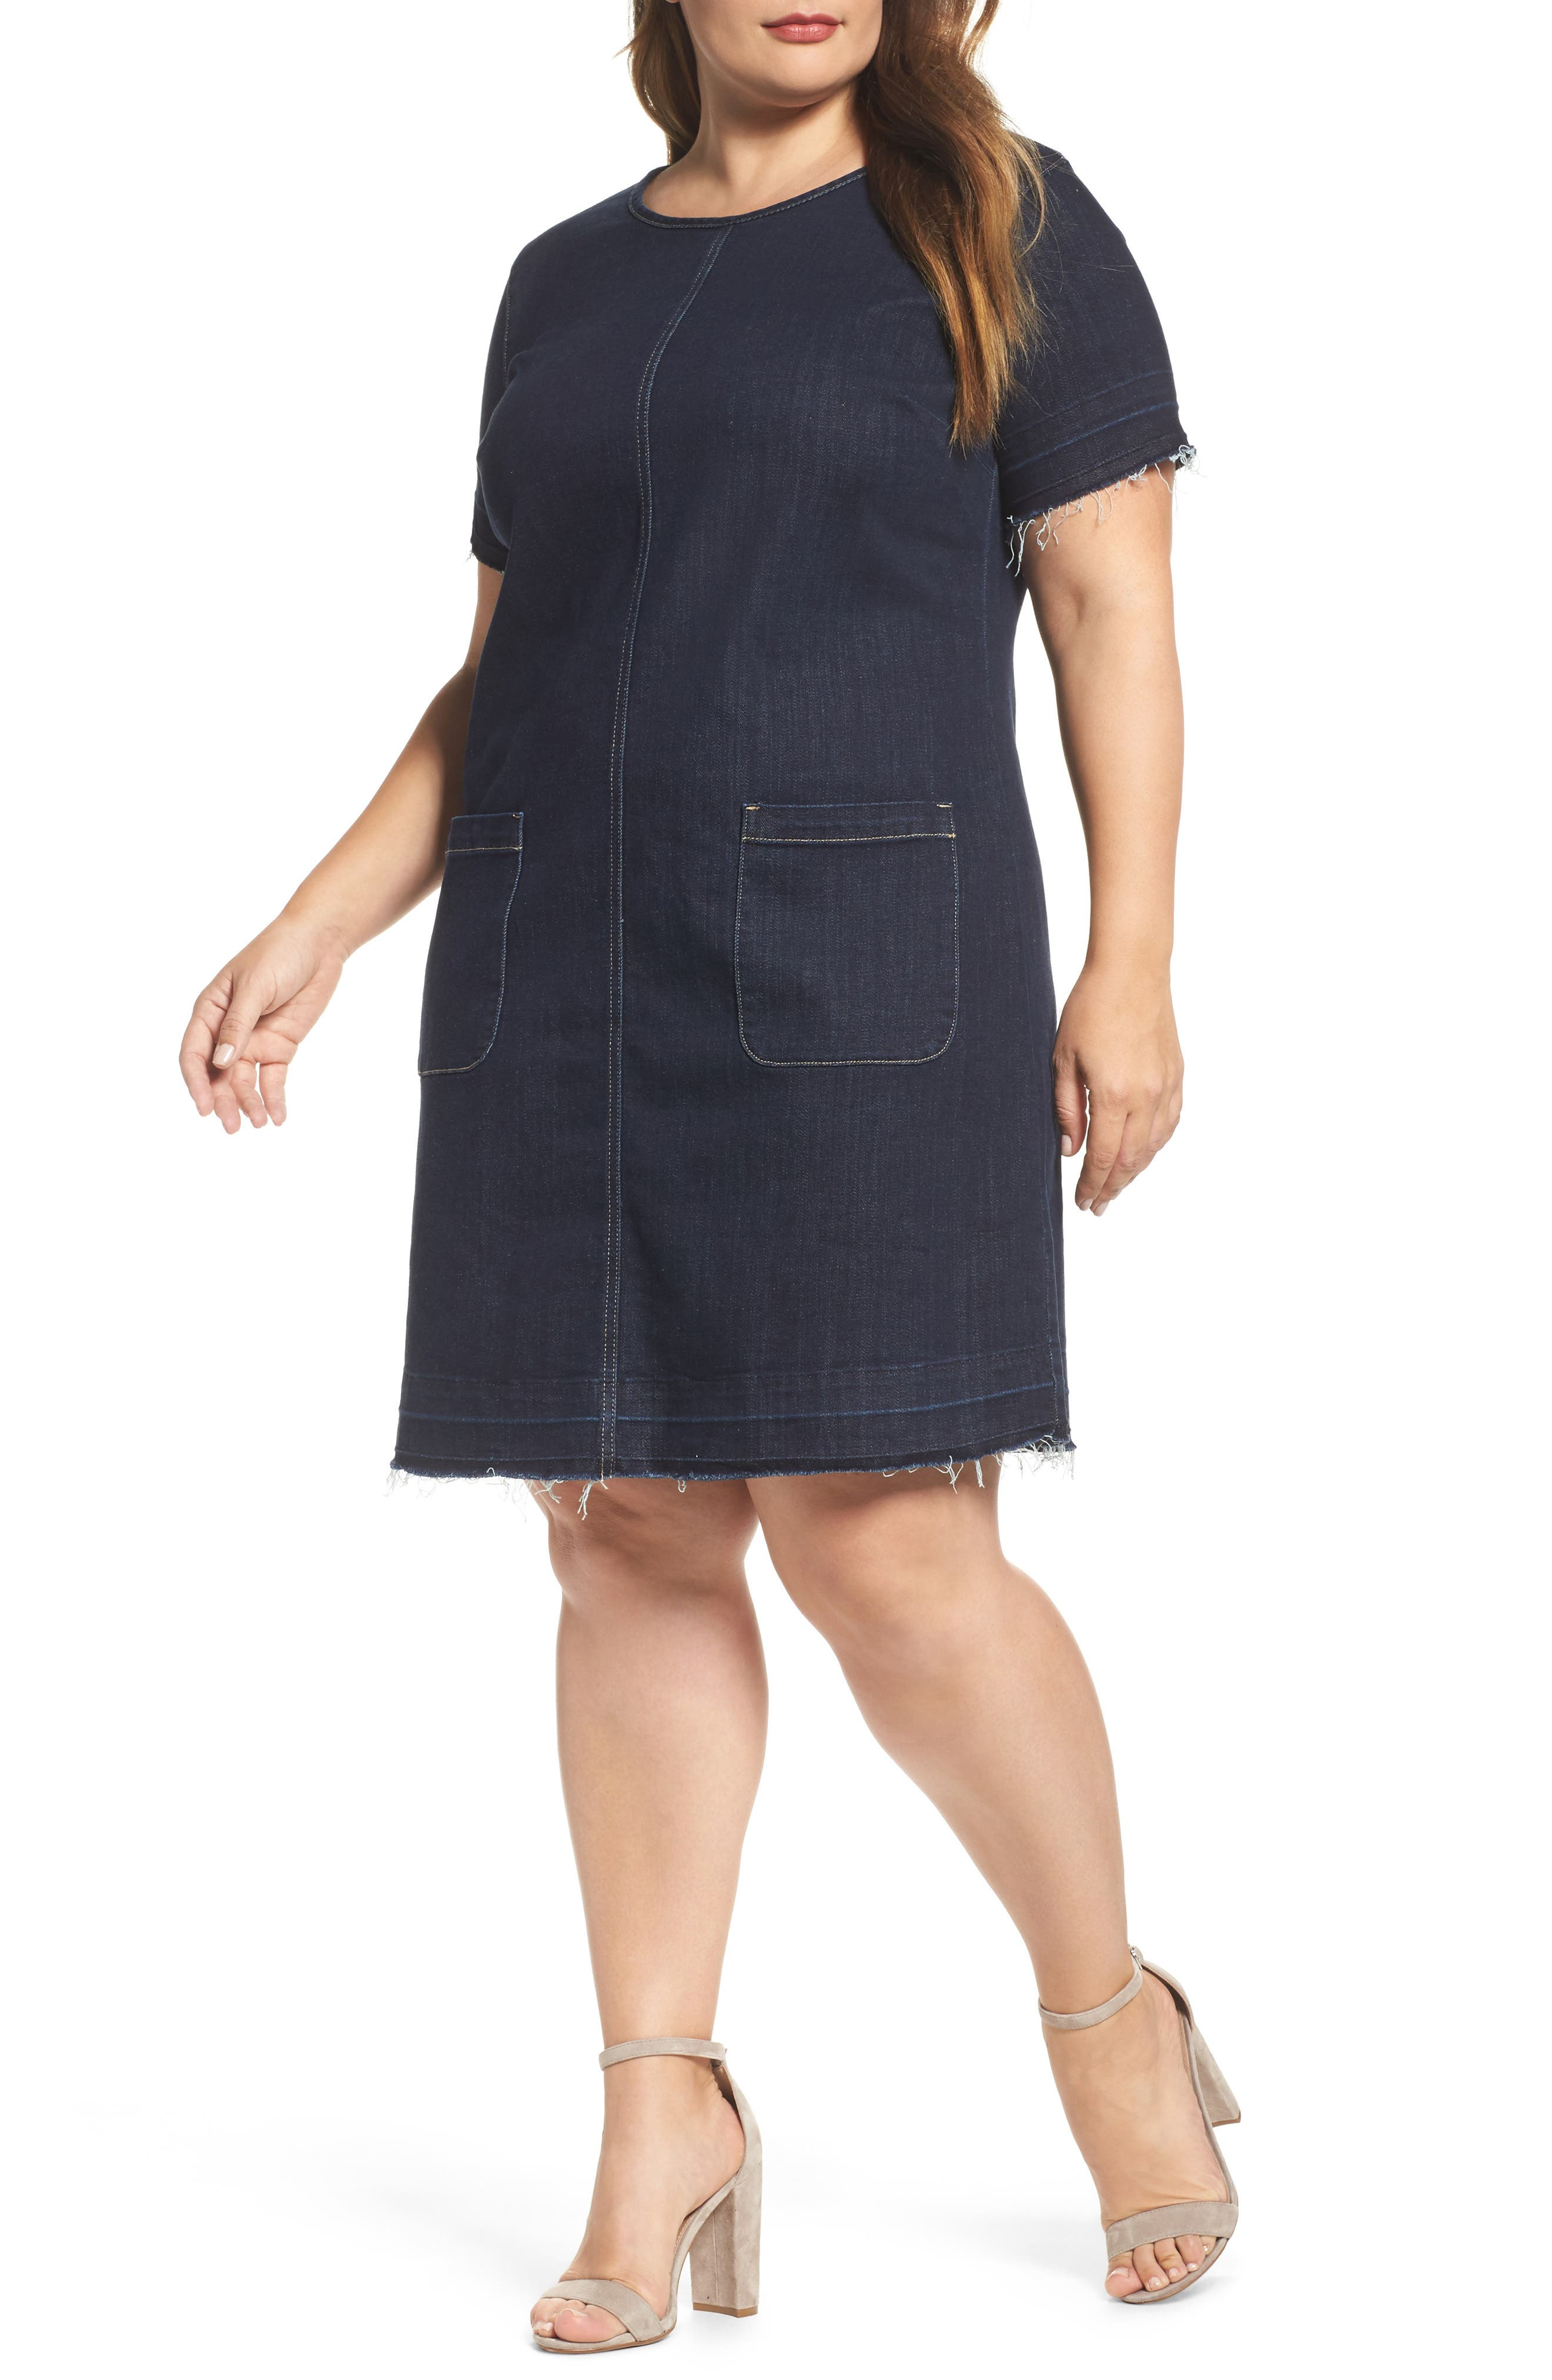 Main Image - Two by Vince Camuto Release Hem Denim Dress (Plus Size)